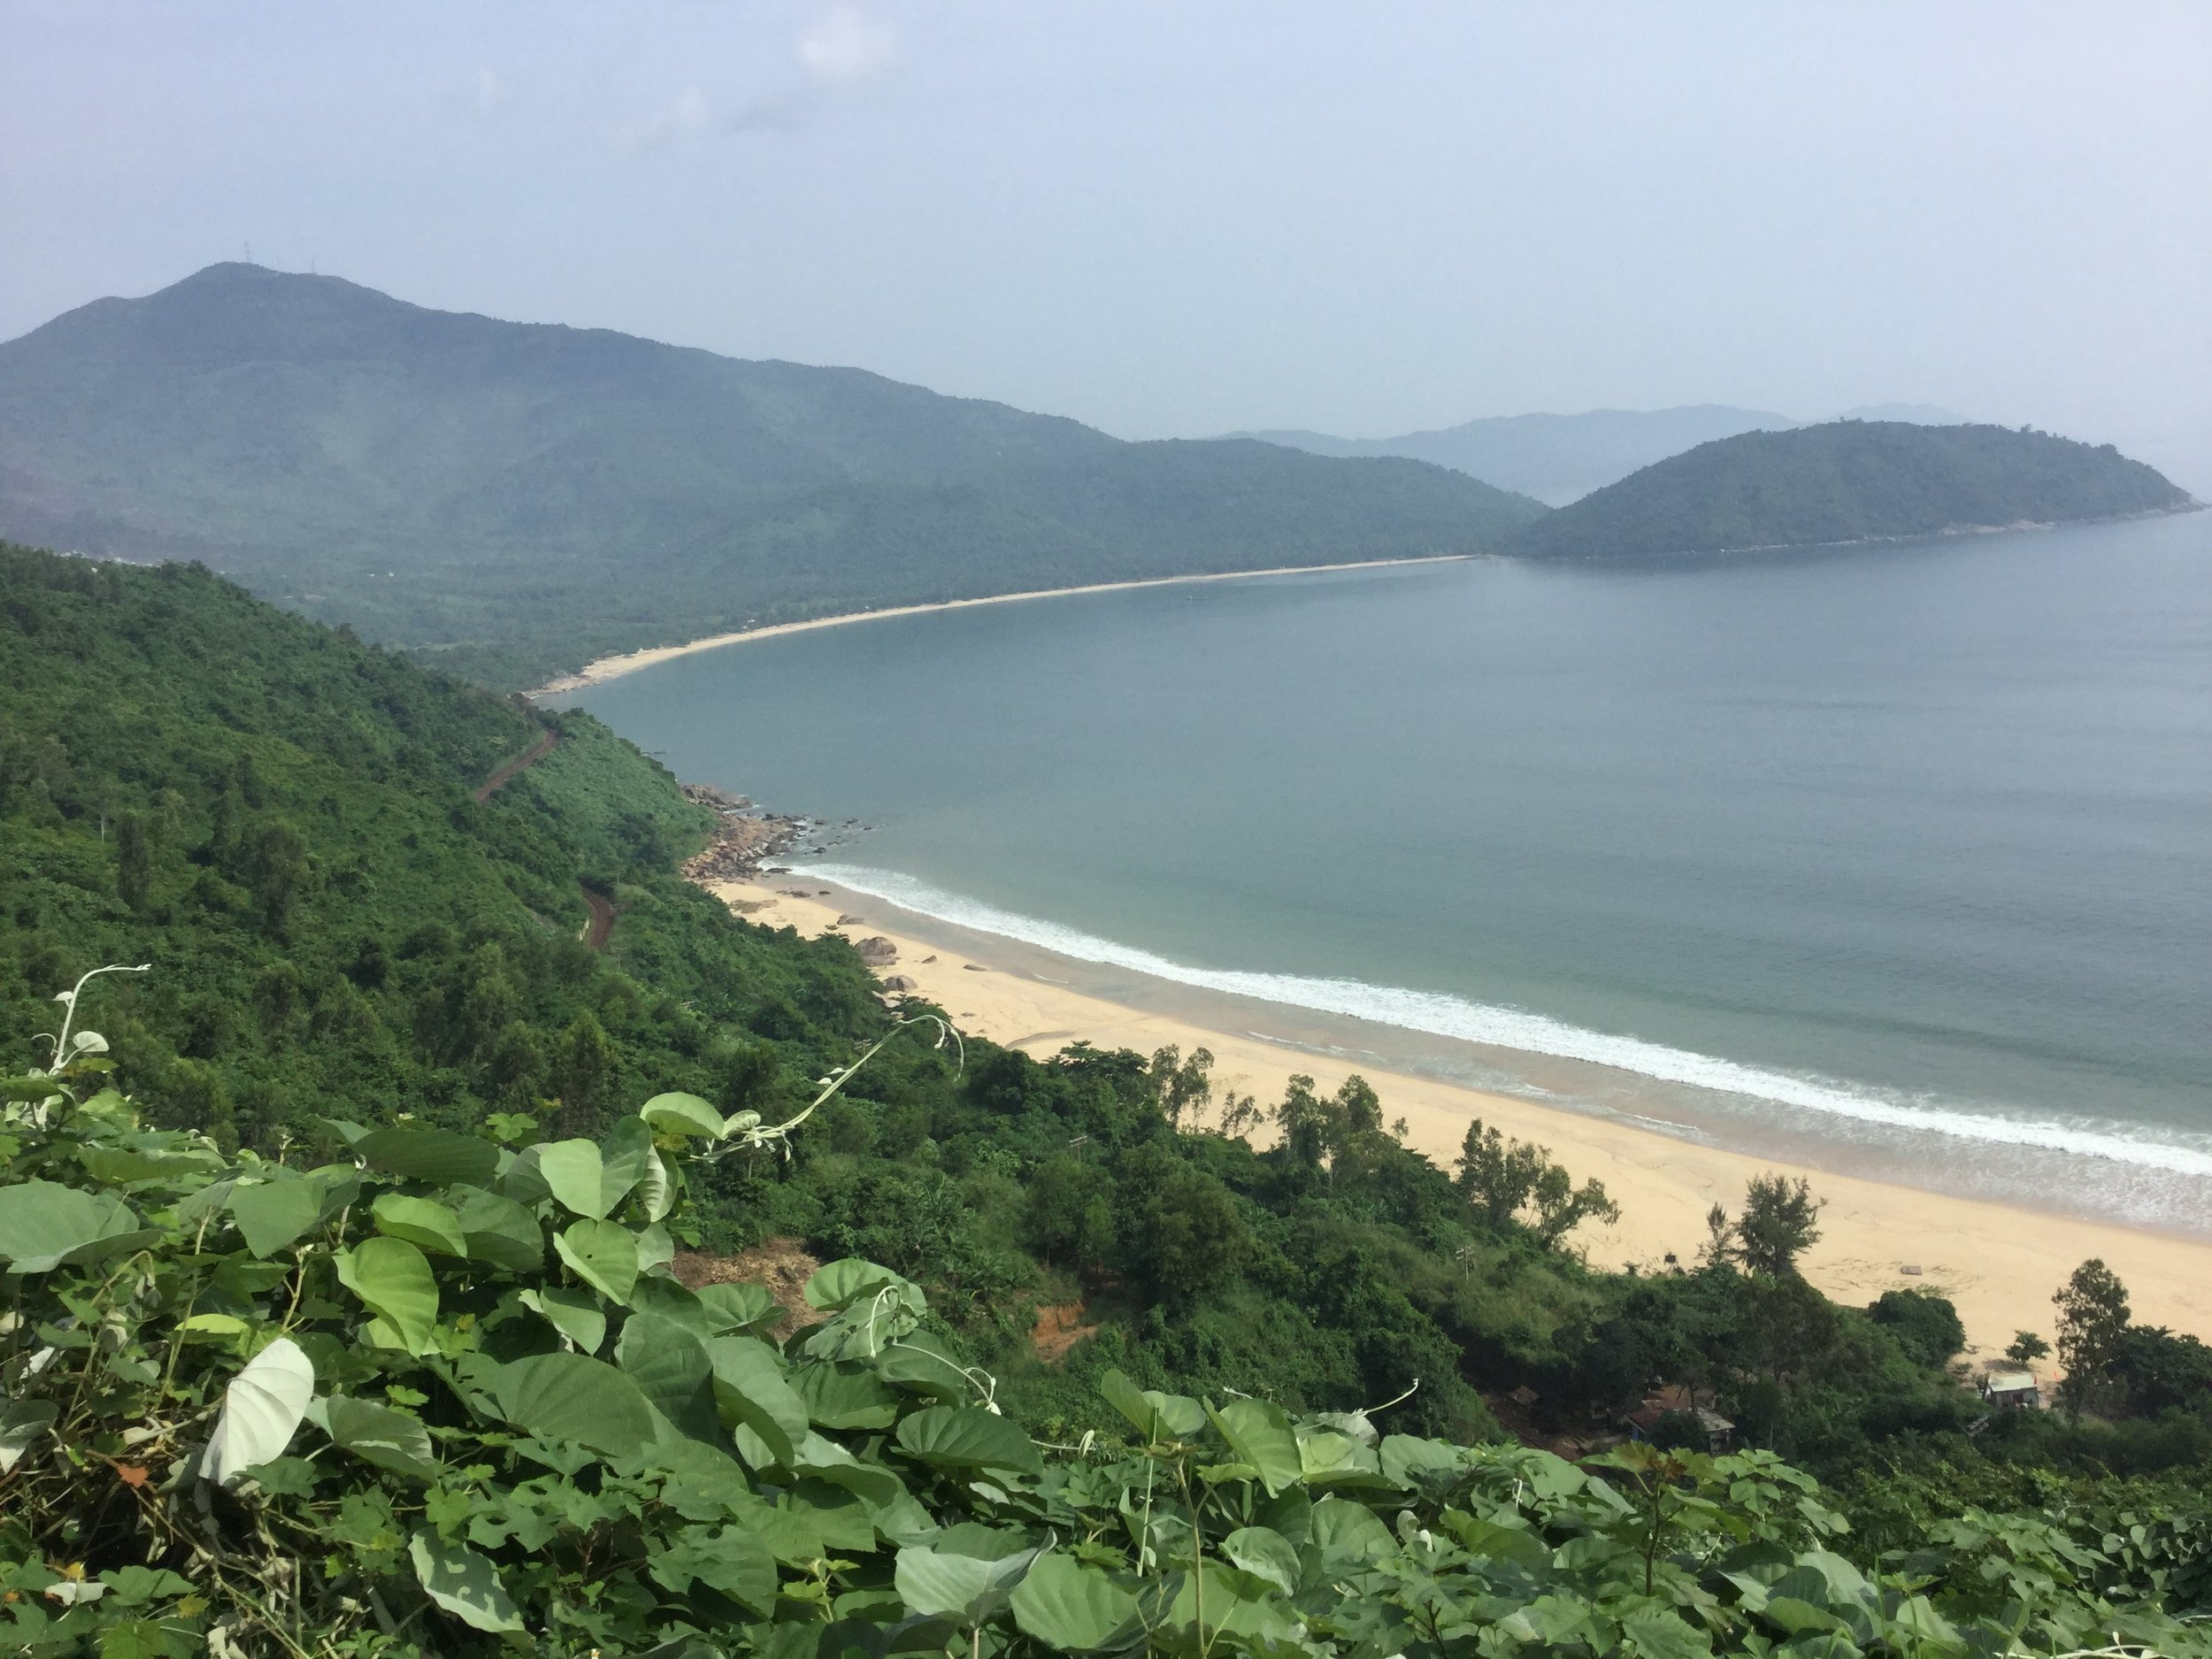 One of the sandy bays between Danang and Lang Co. If you look carefully you can see the railway - a single track meandering a little bit up from the beach. It goes all the way to Hanoi.